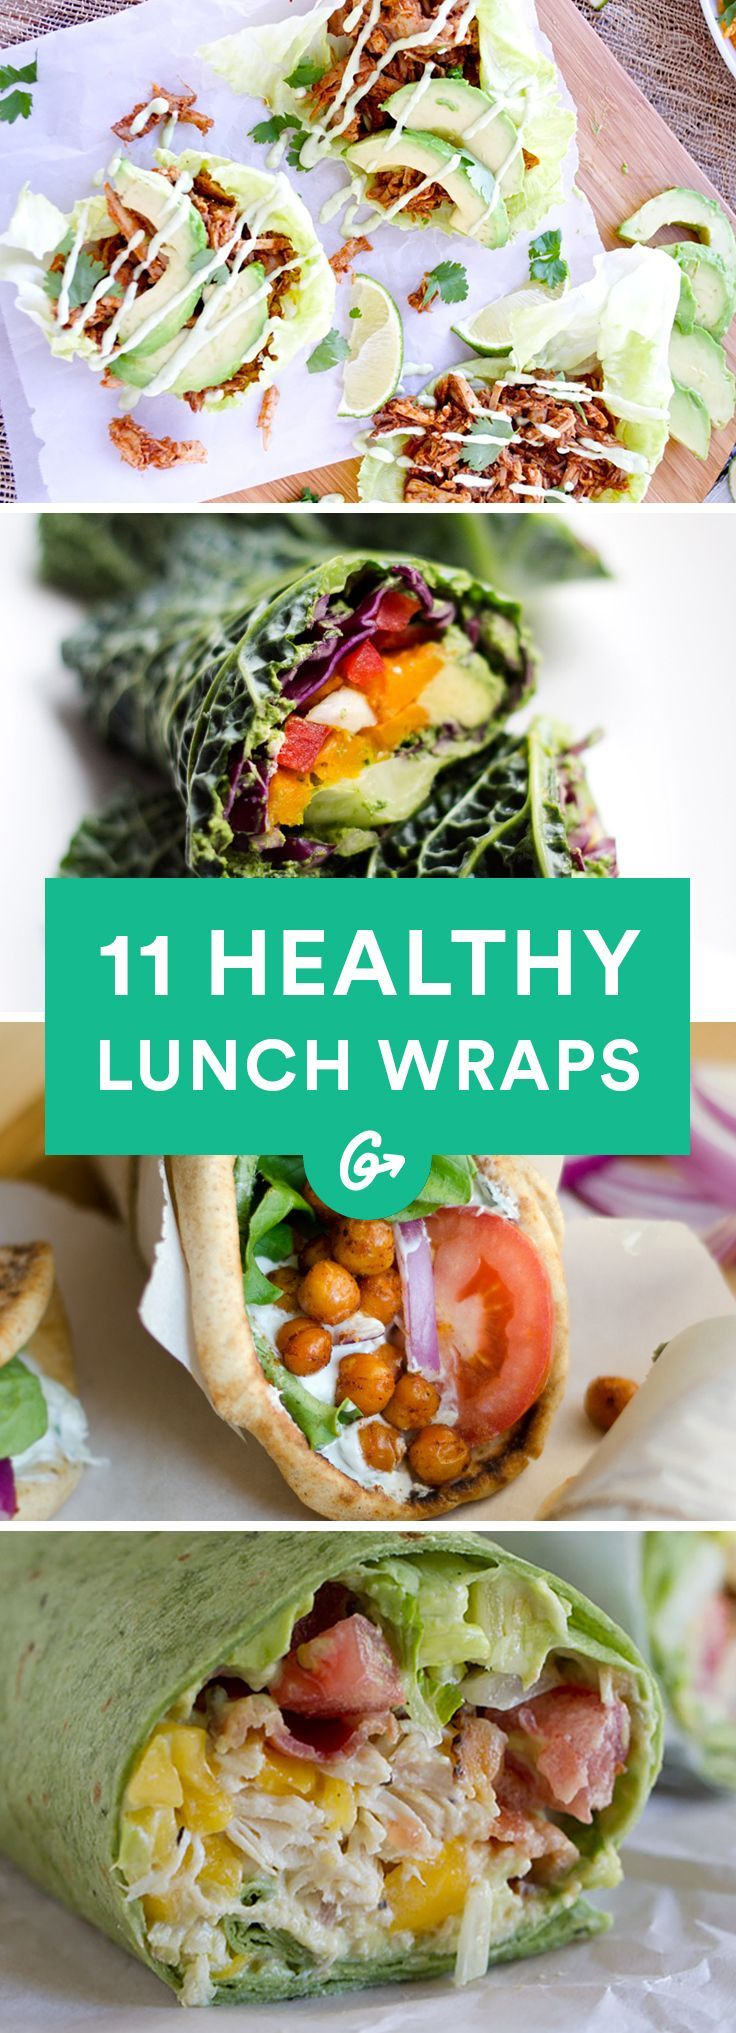 564 best school/packable lunch images on pinterest | lunch snacks